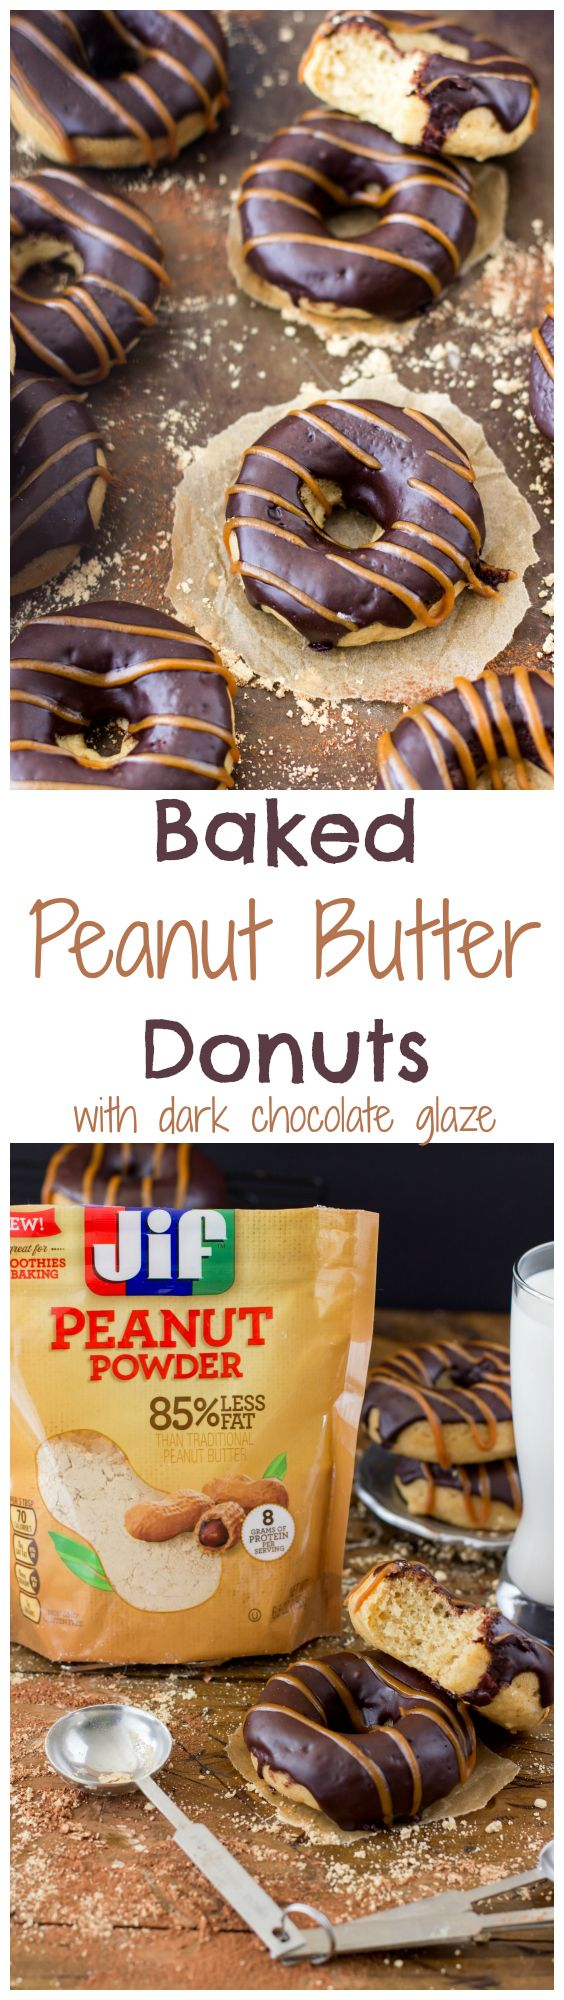 Baked Peanut Butter Donuts made with Jif Peanut Powder #StartWithJifPowder #ad -- SugarSpunRun.com